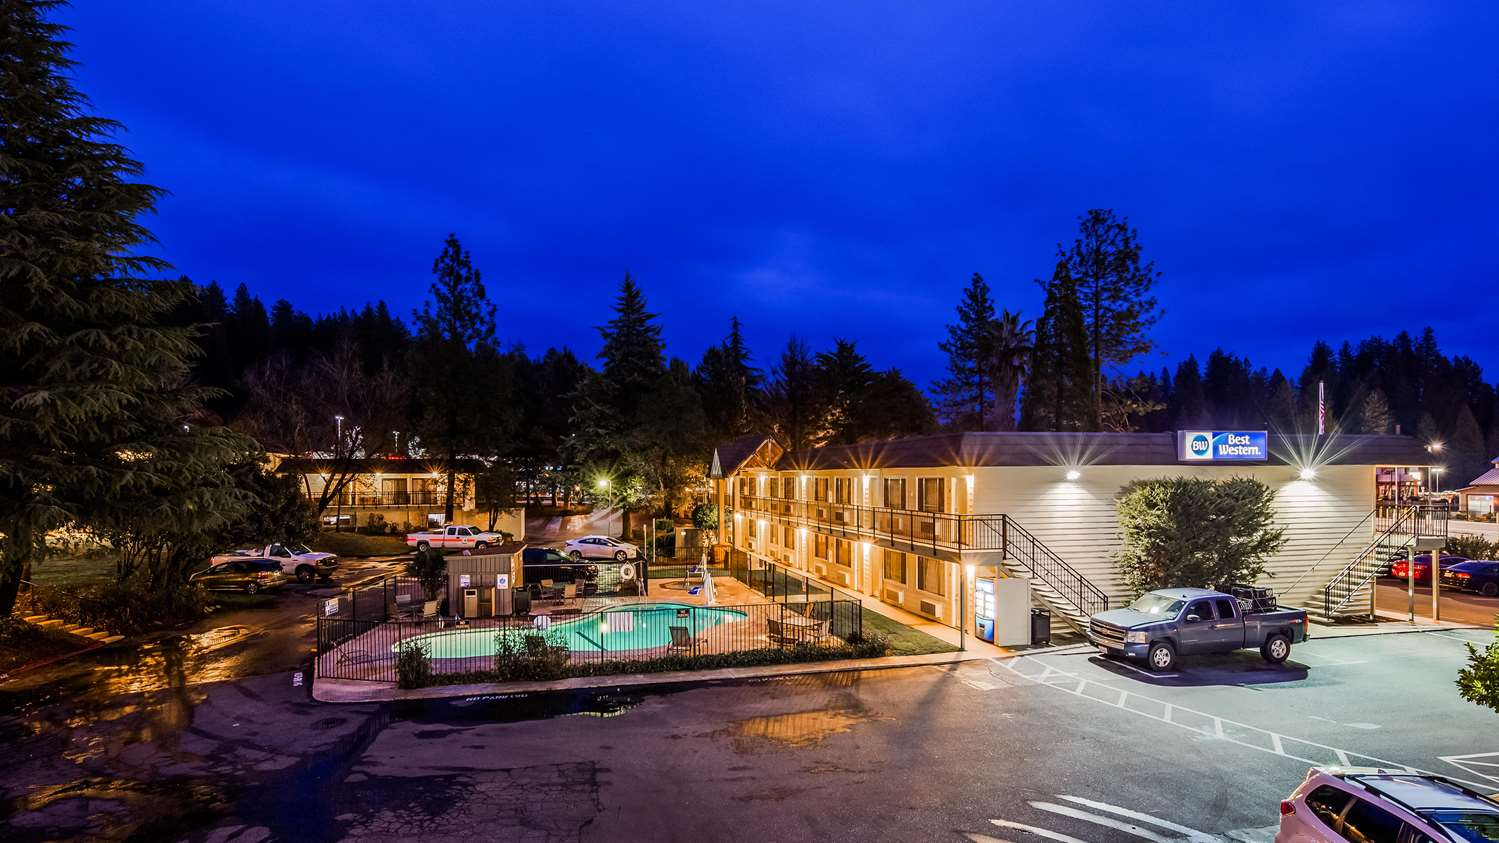 Gold Country Inn California Grass Valley United States